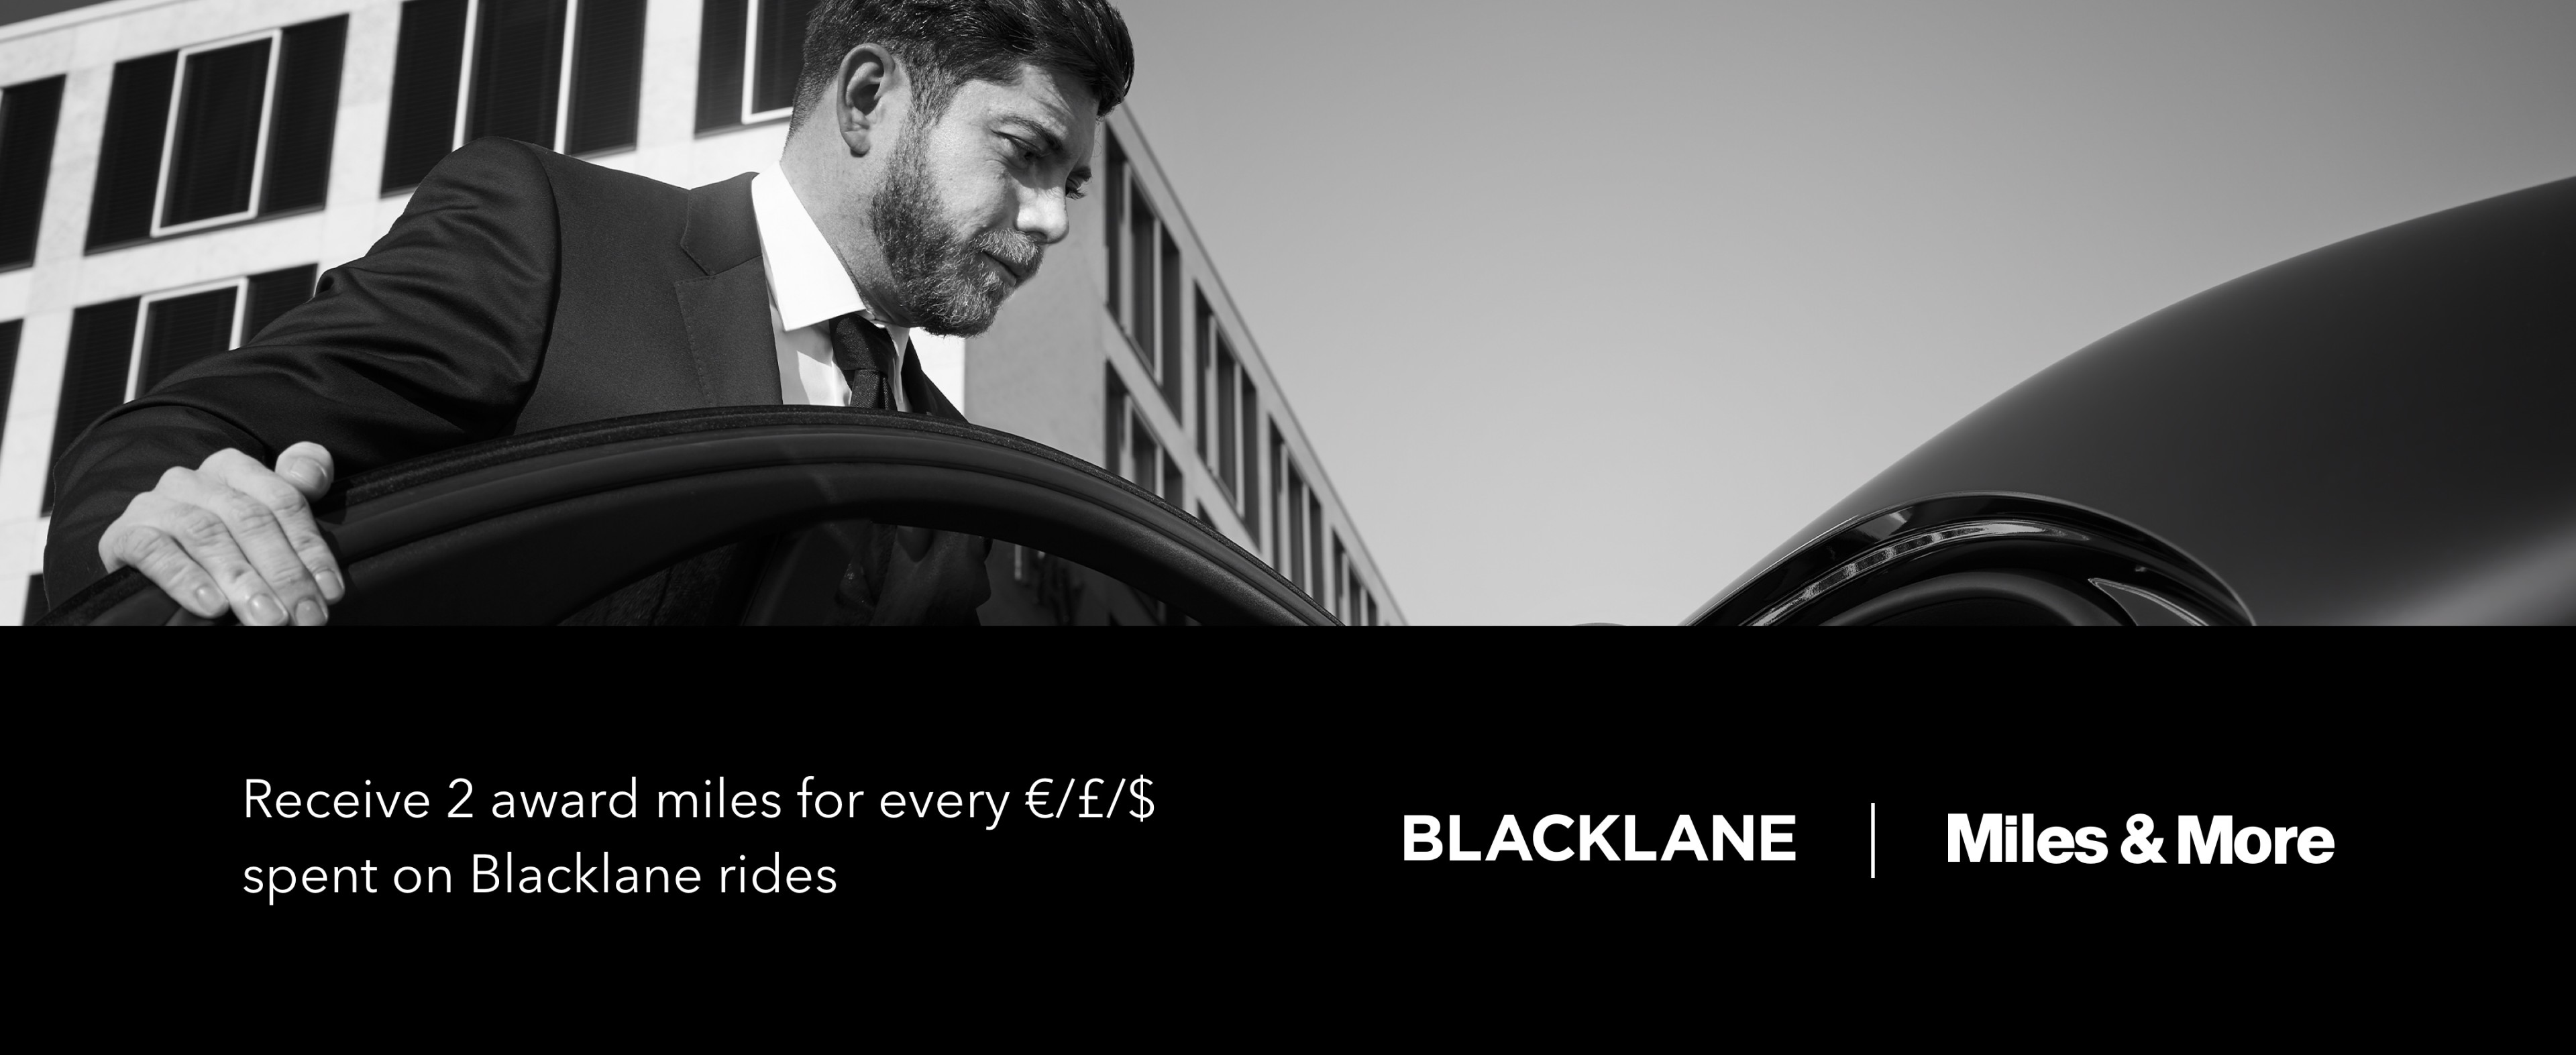 Receive 2 award miles with Miles and More for every dollar spent on Blacklane rides.